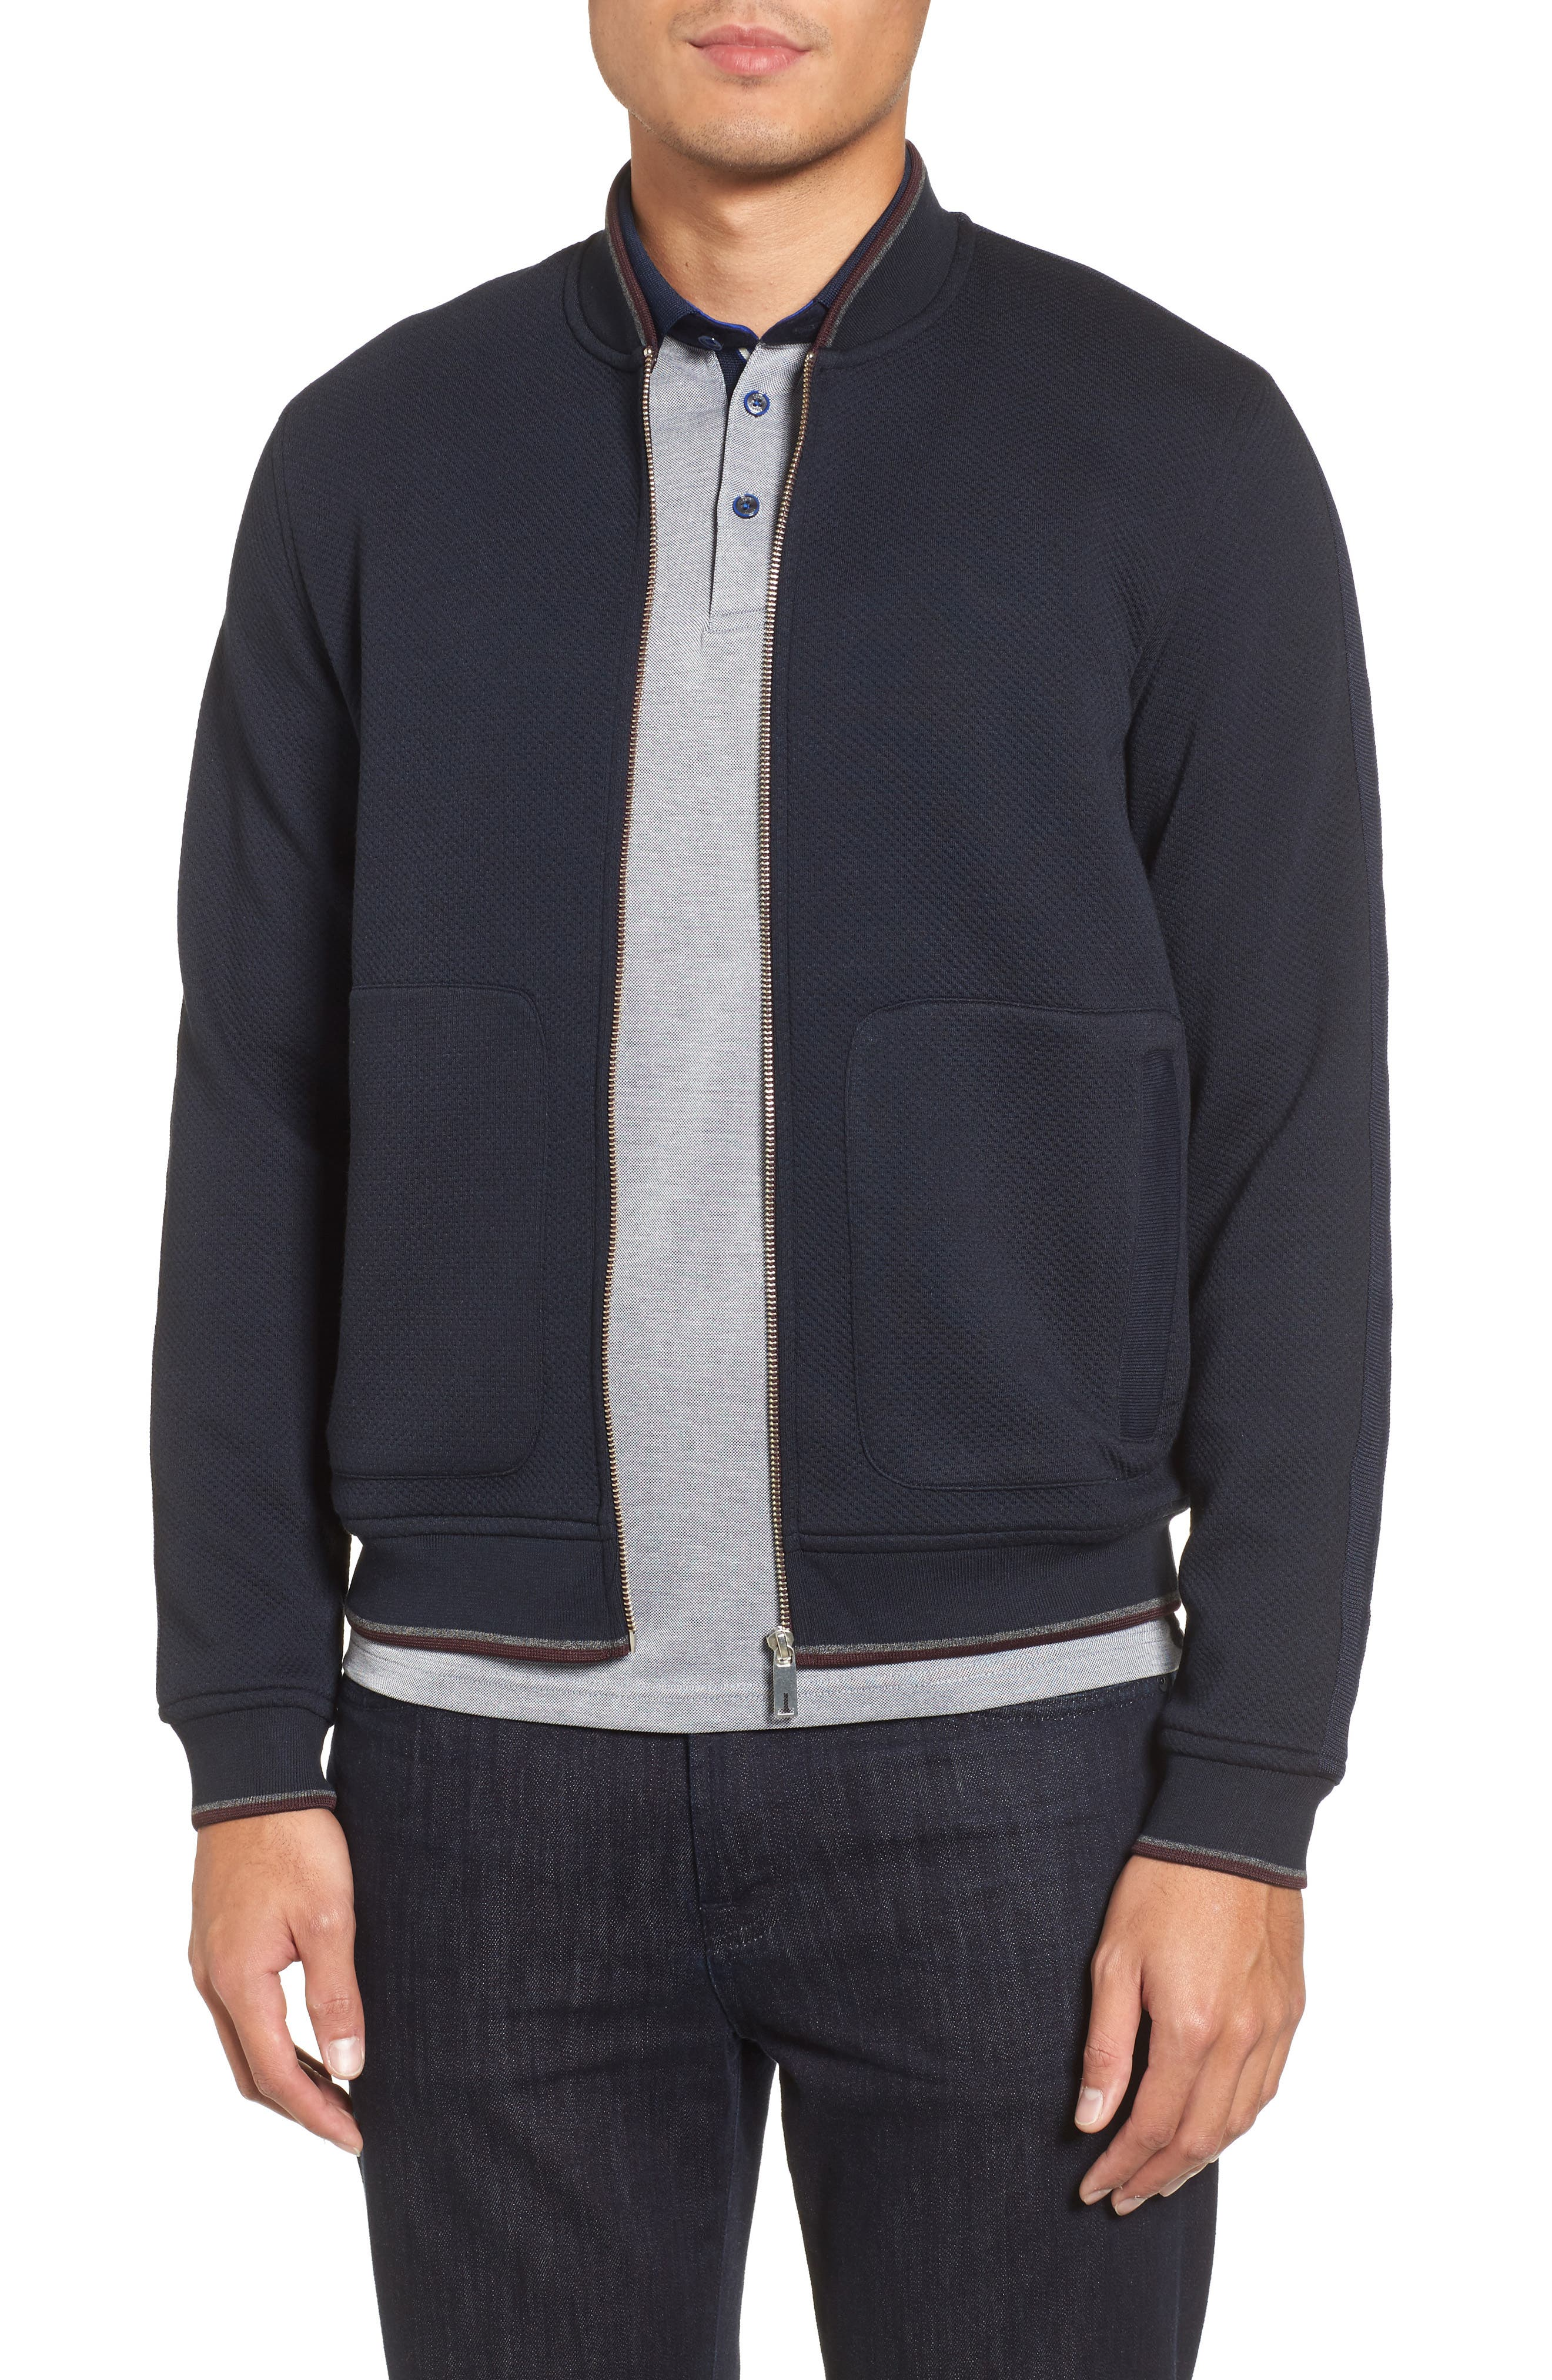 Whatts Trim Fit Textured Bomber Jacket,                         Main,                         color, Navy